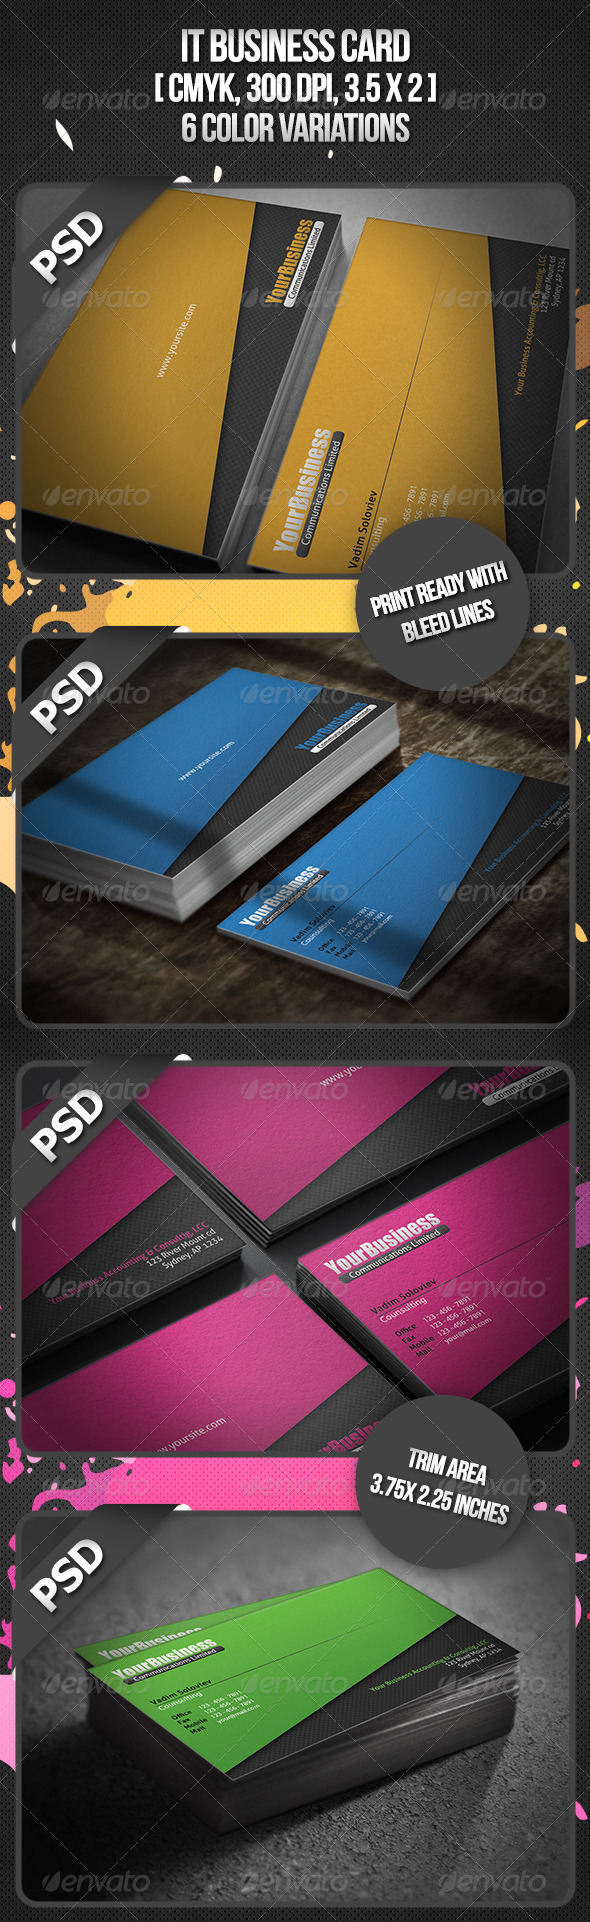 IT Business Card - Creative Business Cards